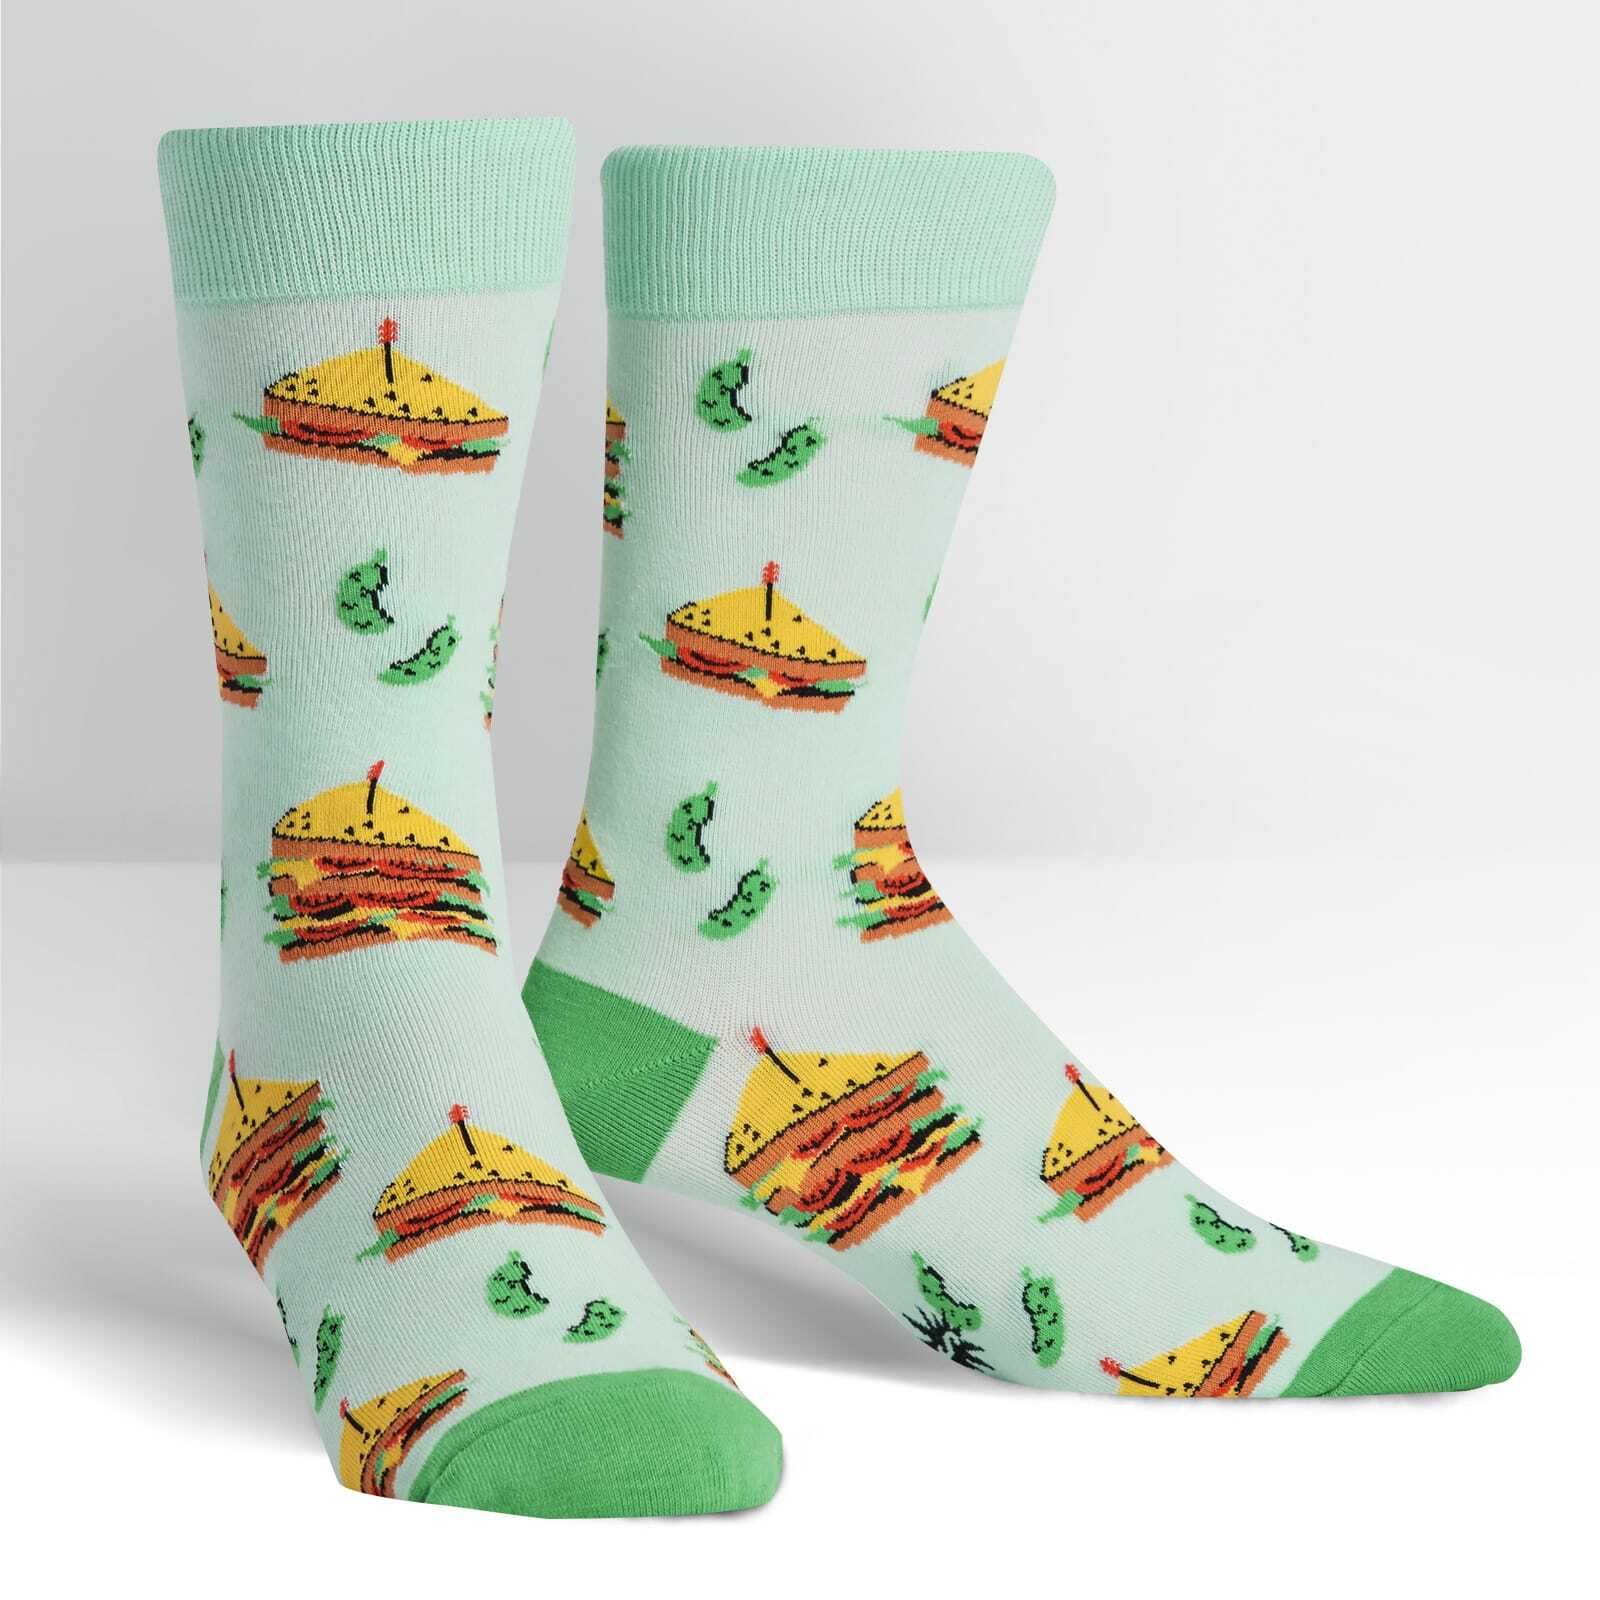 Join the Club - Favorite Sandwich Teal Aqua Men's Crew Socks - Sock It to Me in Teal